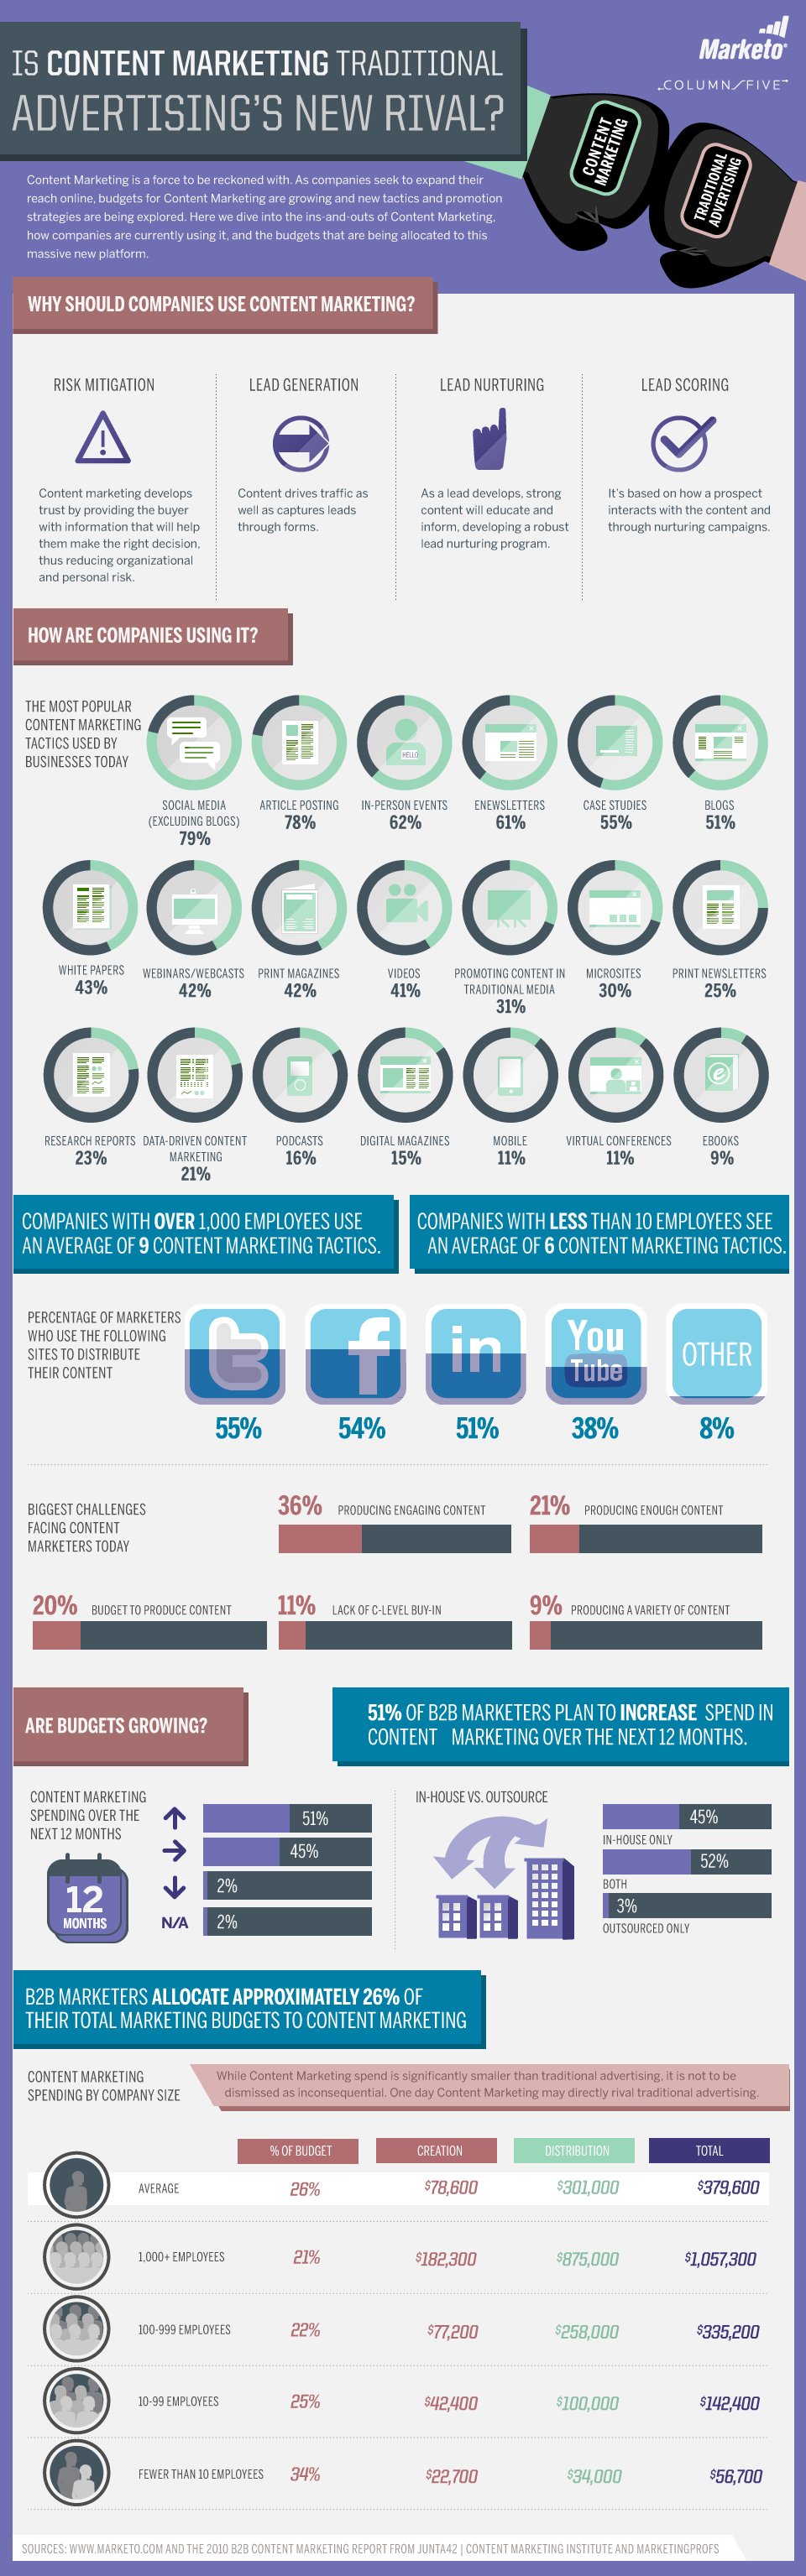 How Content Marketing Compares to Traditional Advertising [infographic]